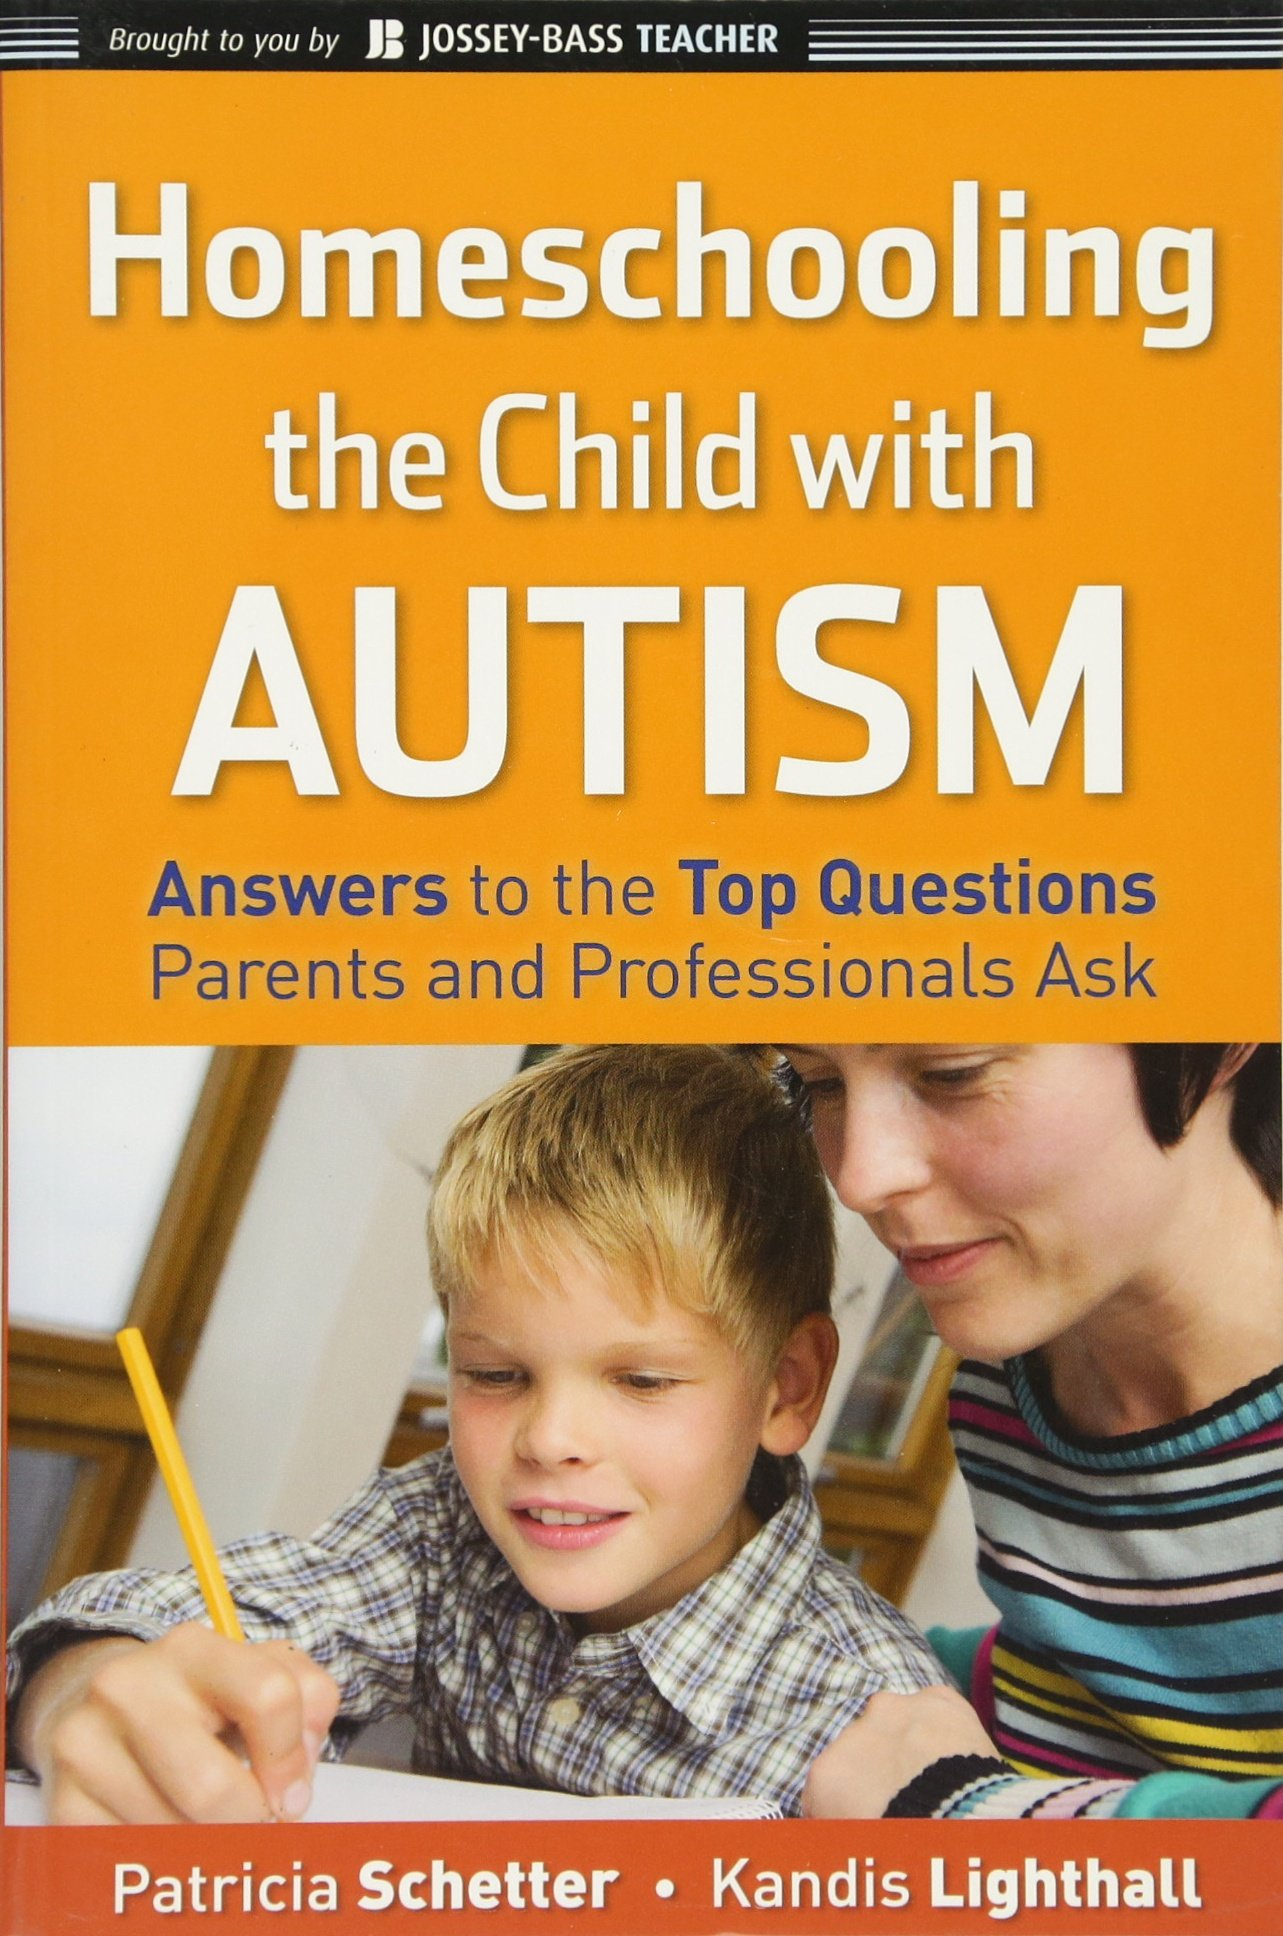 Homeschooling the Child with Autism Answers to the Top Questions